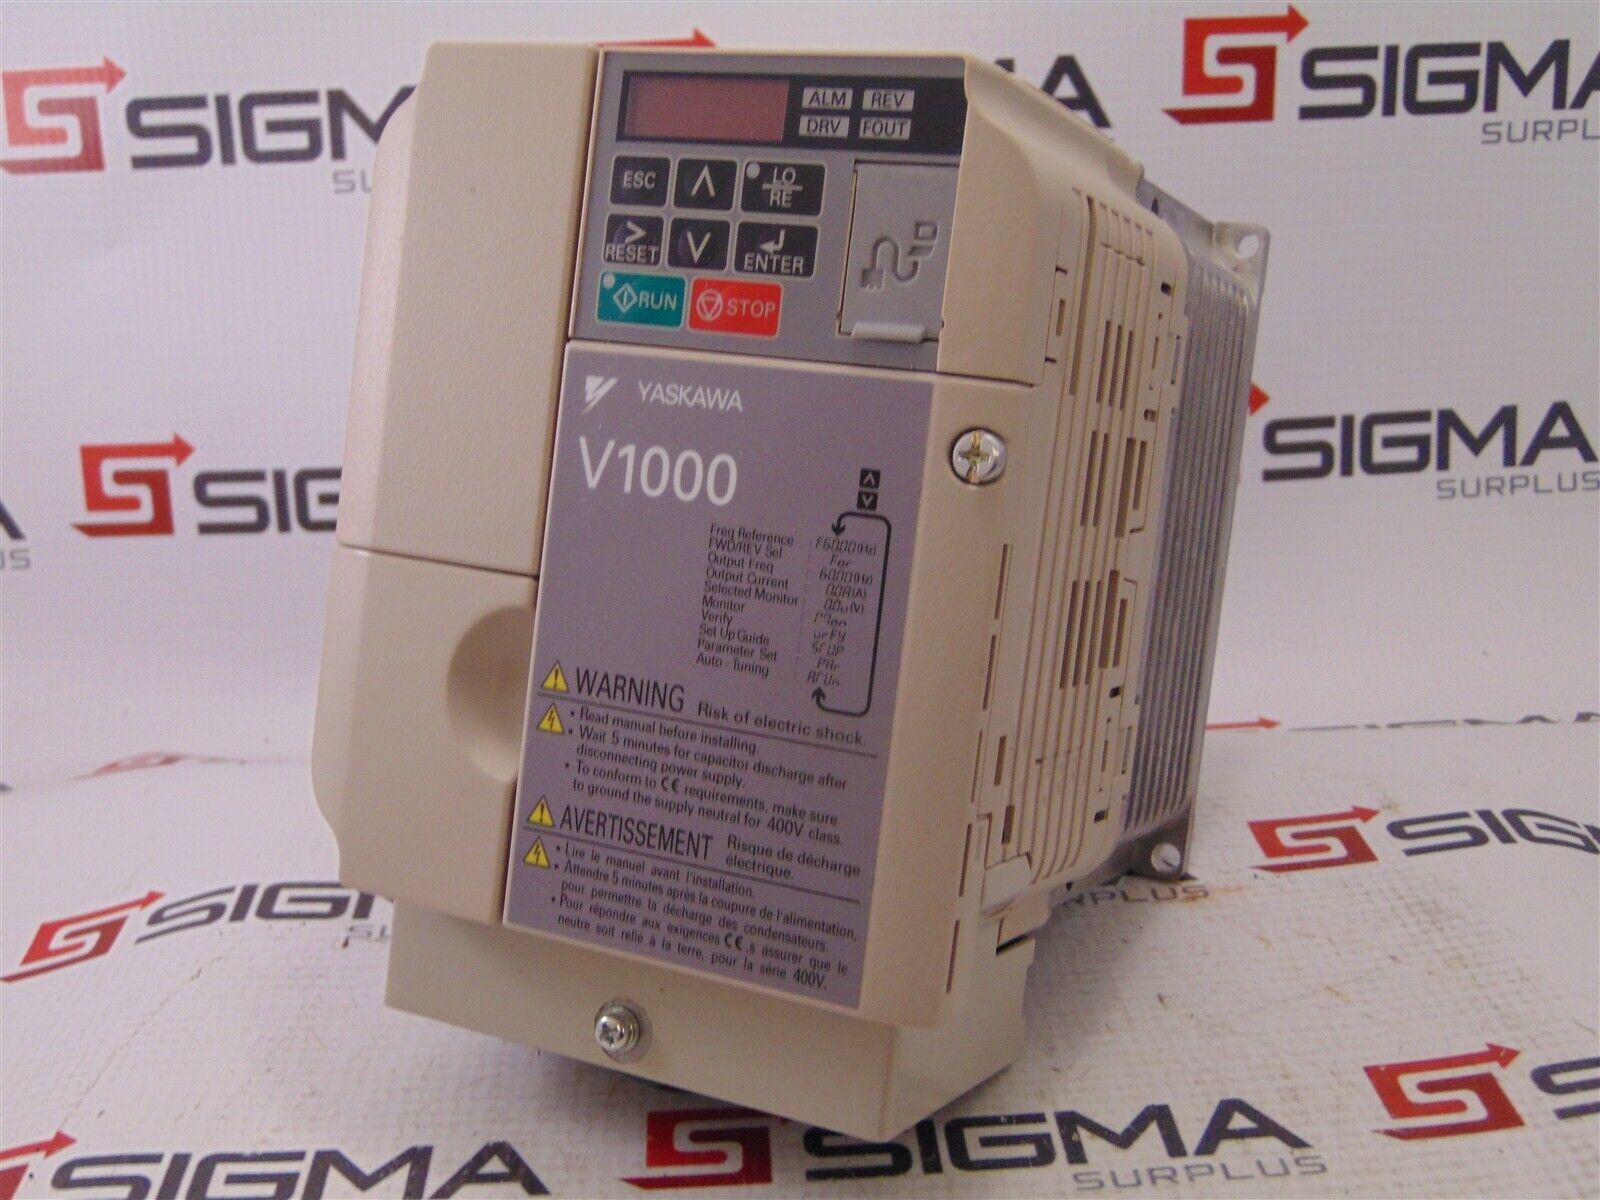 Yaskawa CIMR-VU4A0004FAA Variable Frequency Drive V1000 REV A Phase 3